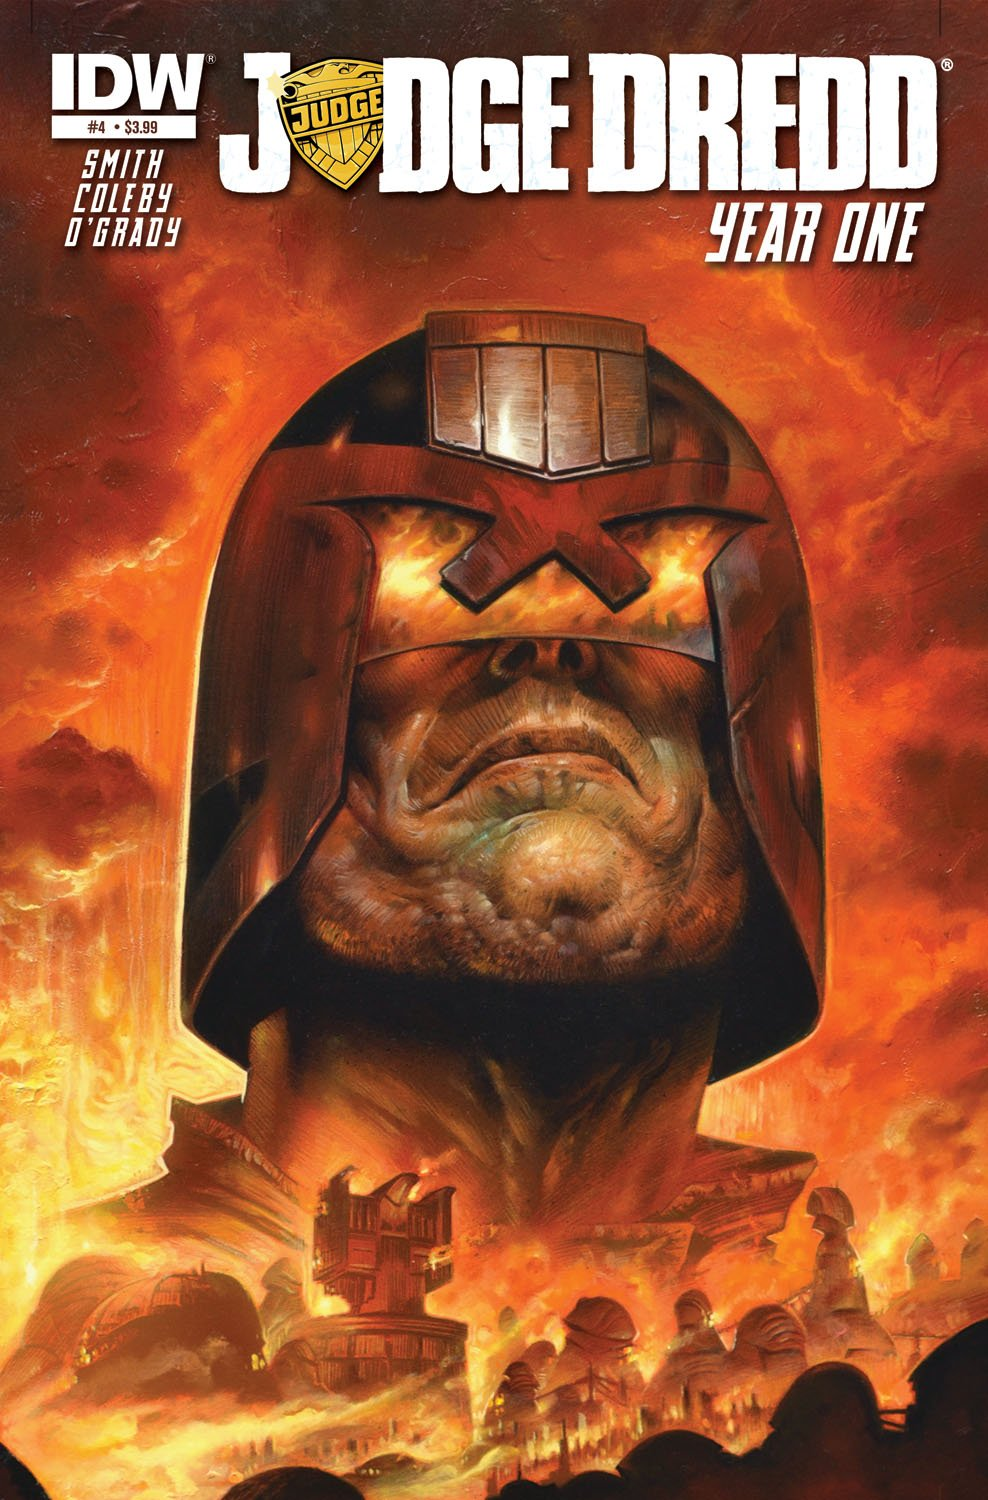 judge-dredd-year-one-04-cover-staples